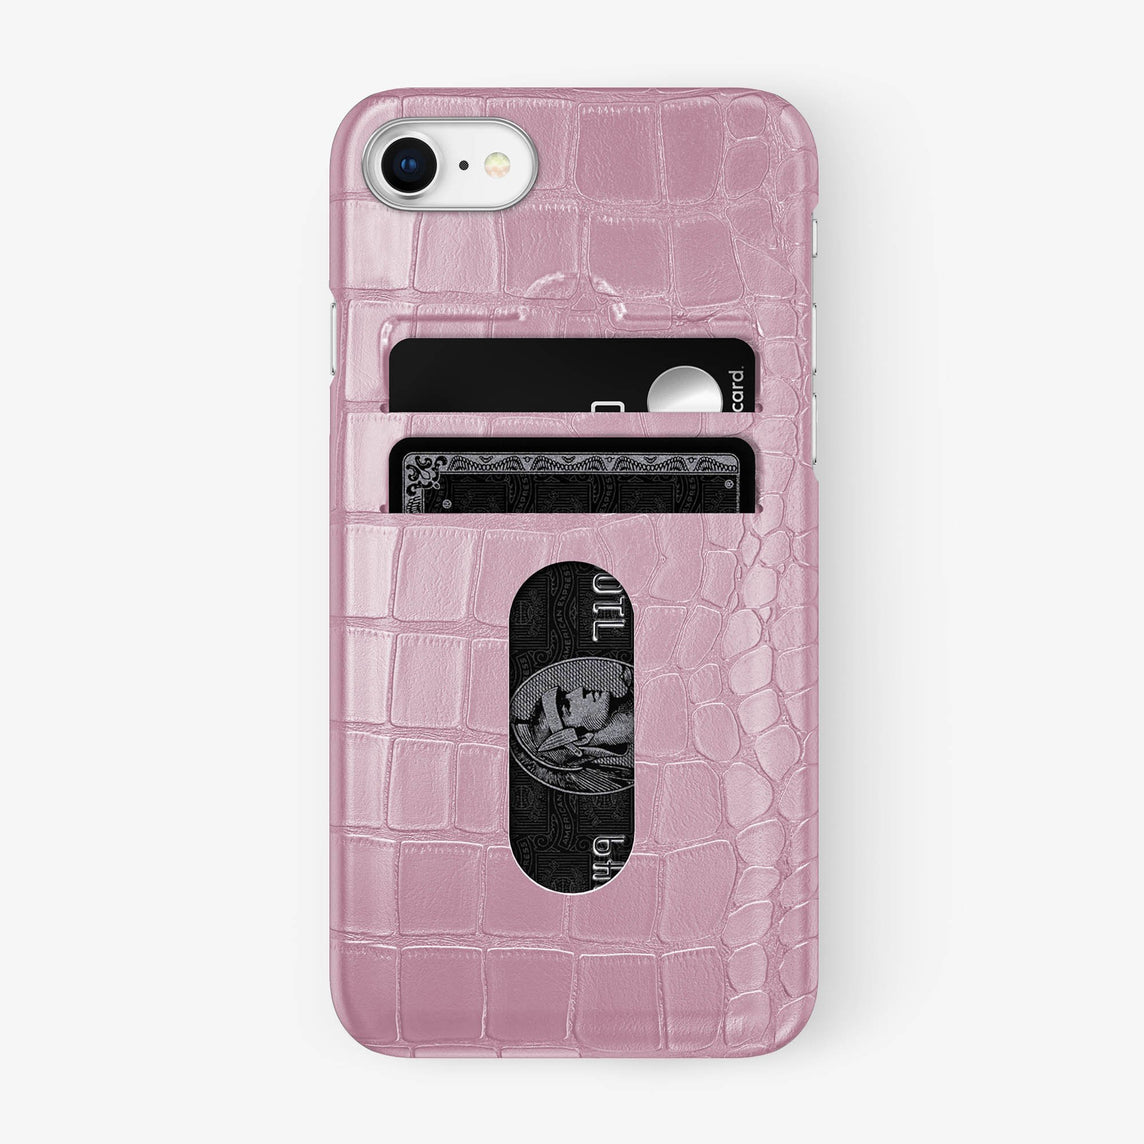 Alligator [iPhone Card Holder Case] [model:iphone-7-8-case] [colour:pink] [finishing:stainless-steel] - Hadoro